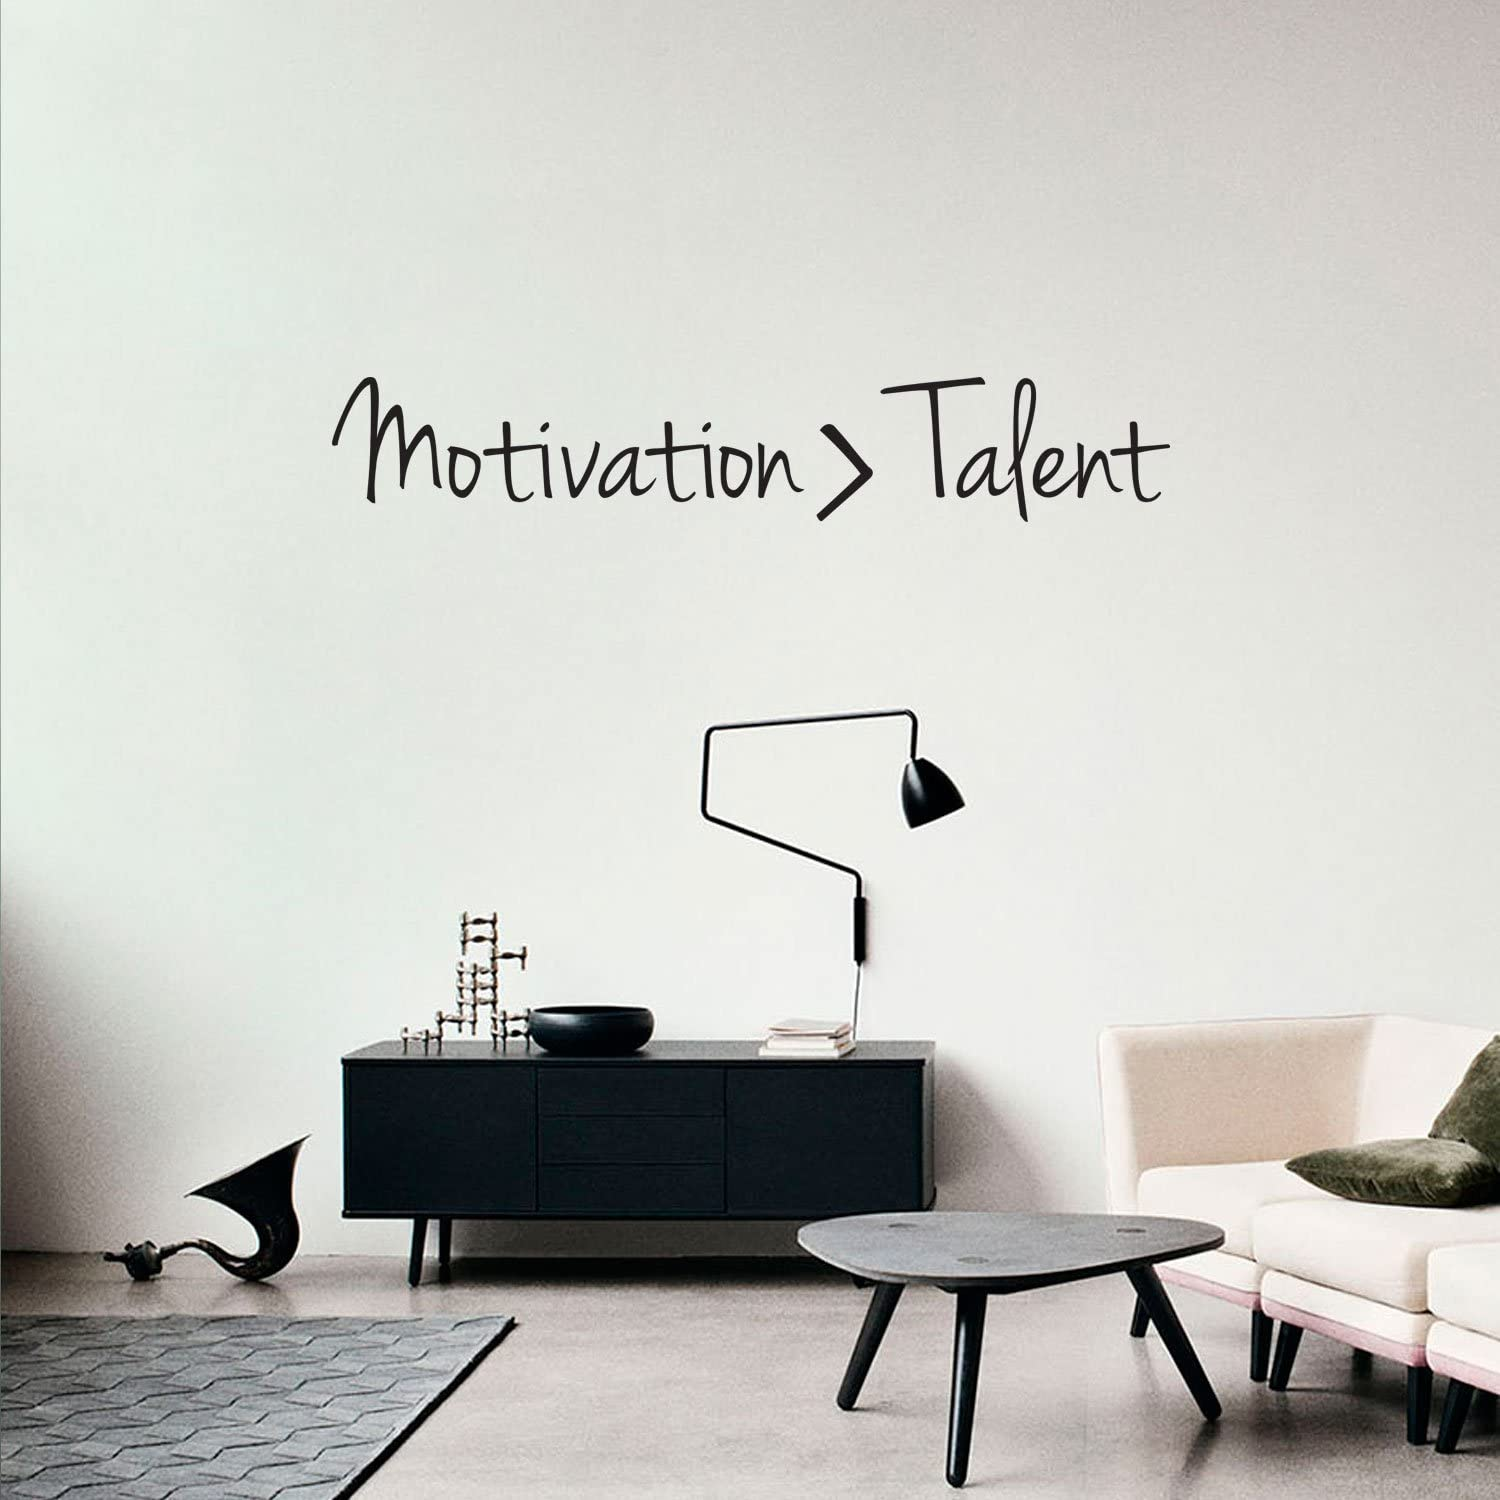 Wall Quotes Vinyl Wall Decal Vinyl Sticker S001ET There/'s no mountain that\u2019s high enough